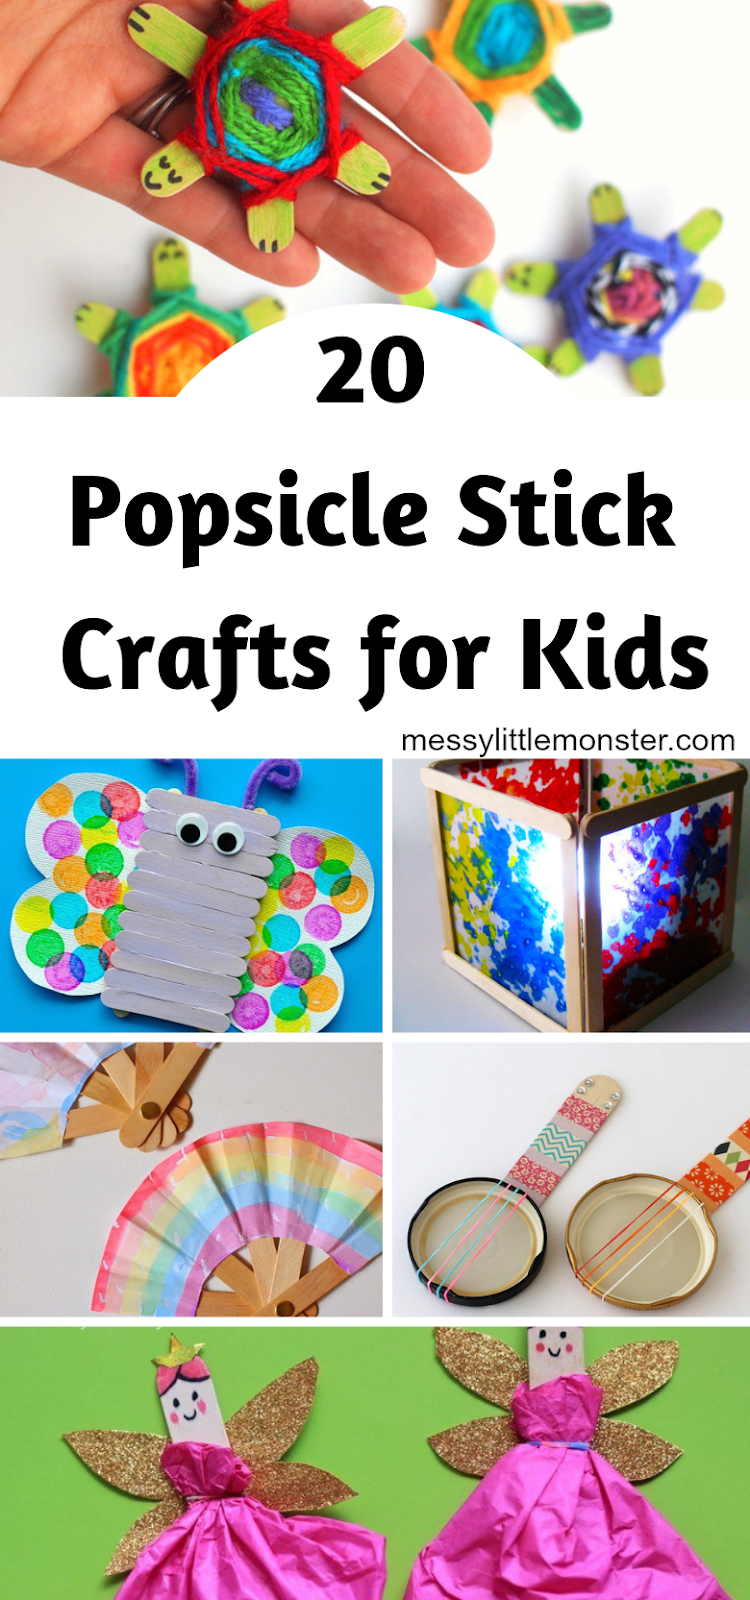 Photo of Popsicle Stick Crafts for Kids